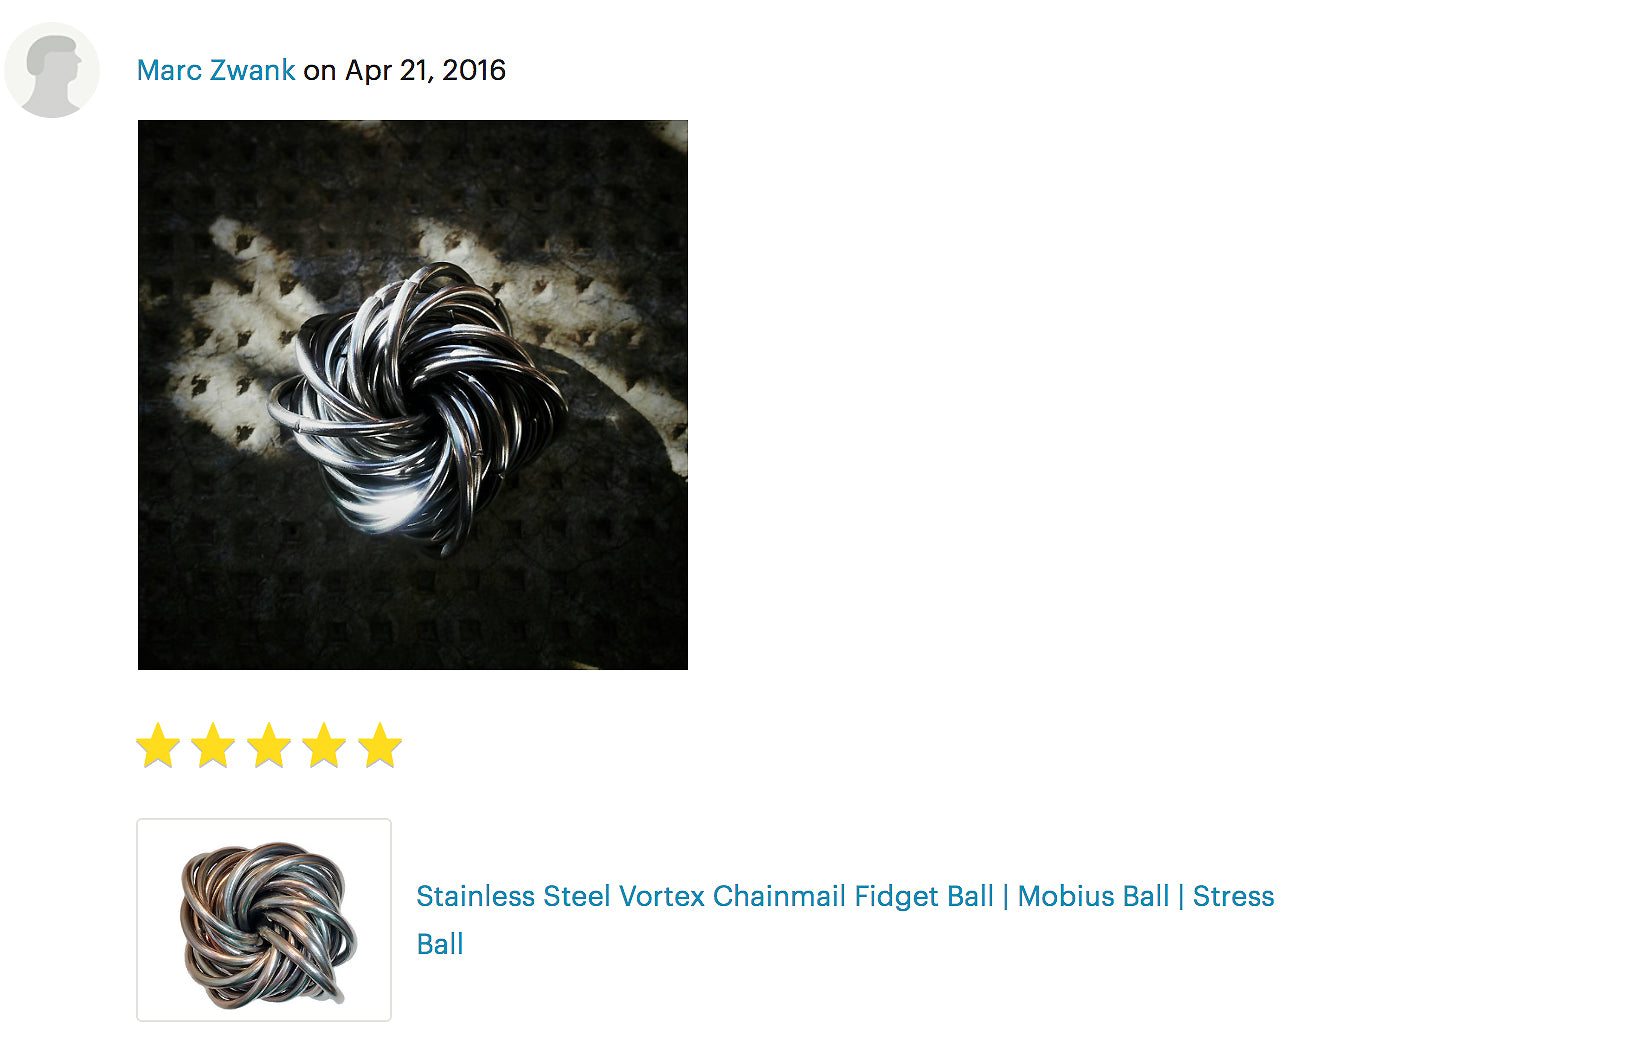 Stainless Steel Vortex Chainmail Fidget Ball | Mobius Ball | Stress Ball product review